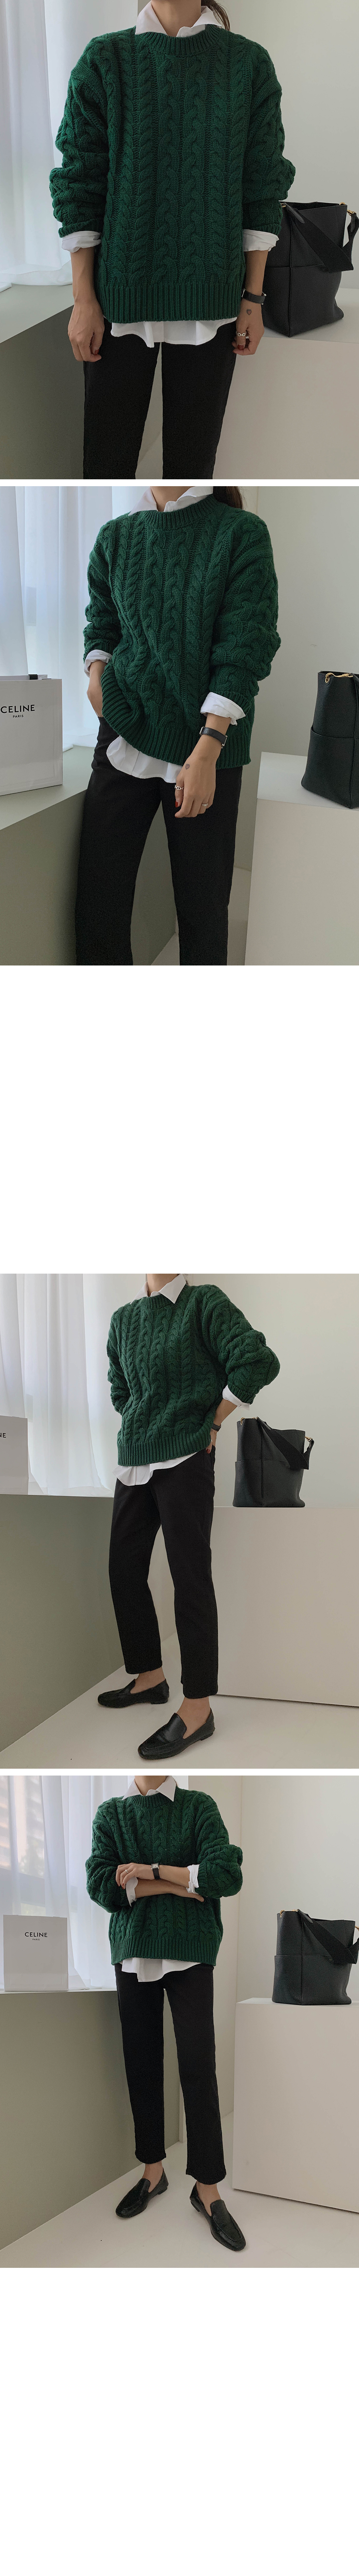 Vintage cable wool knit